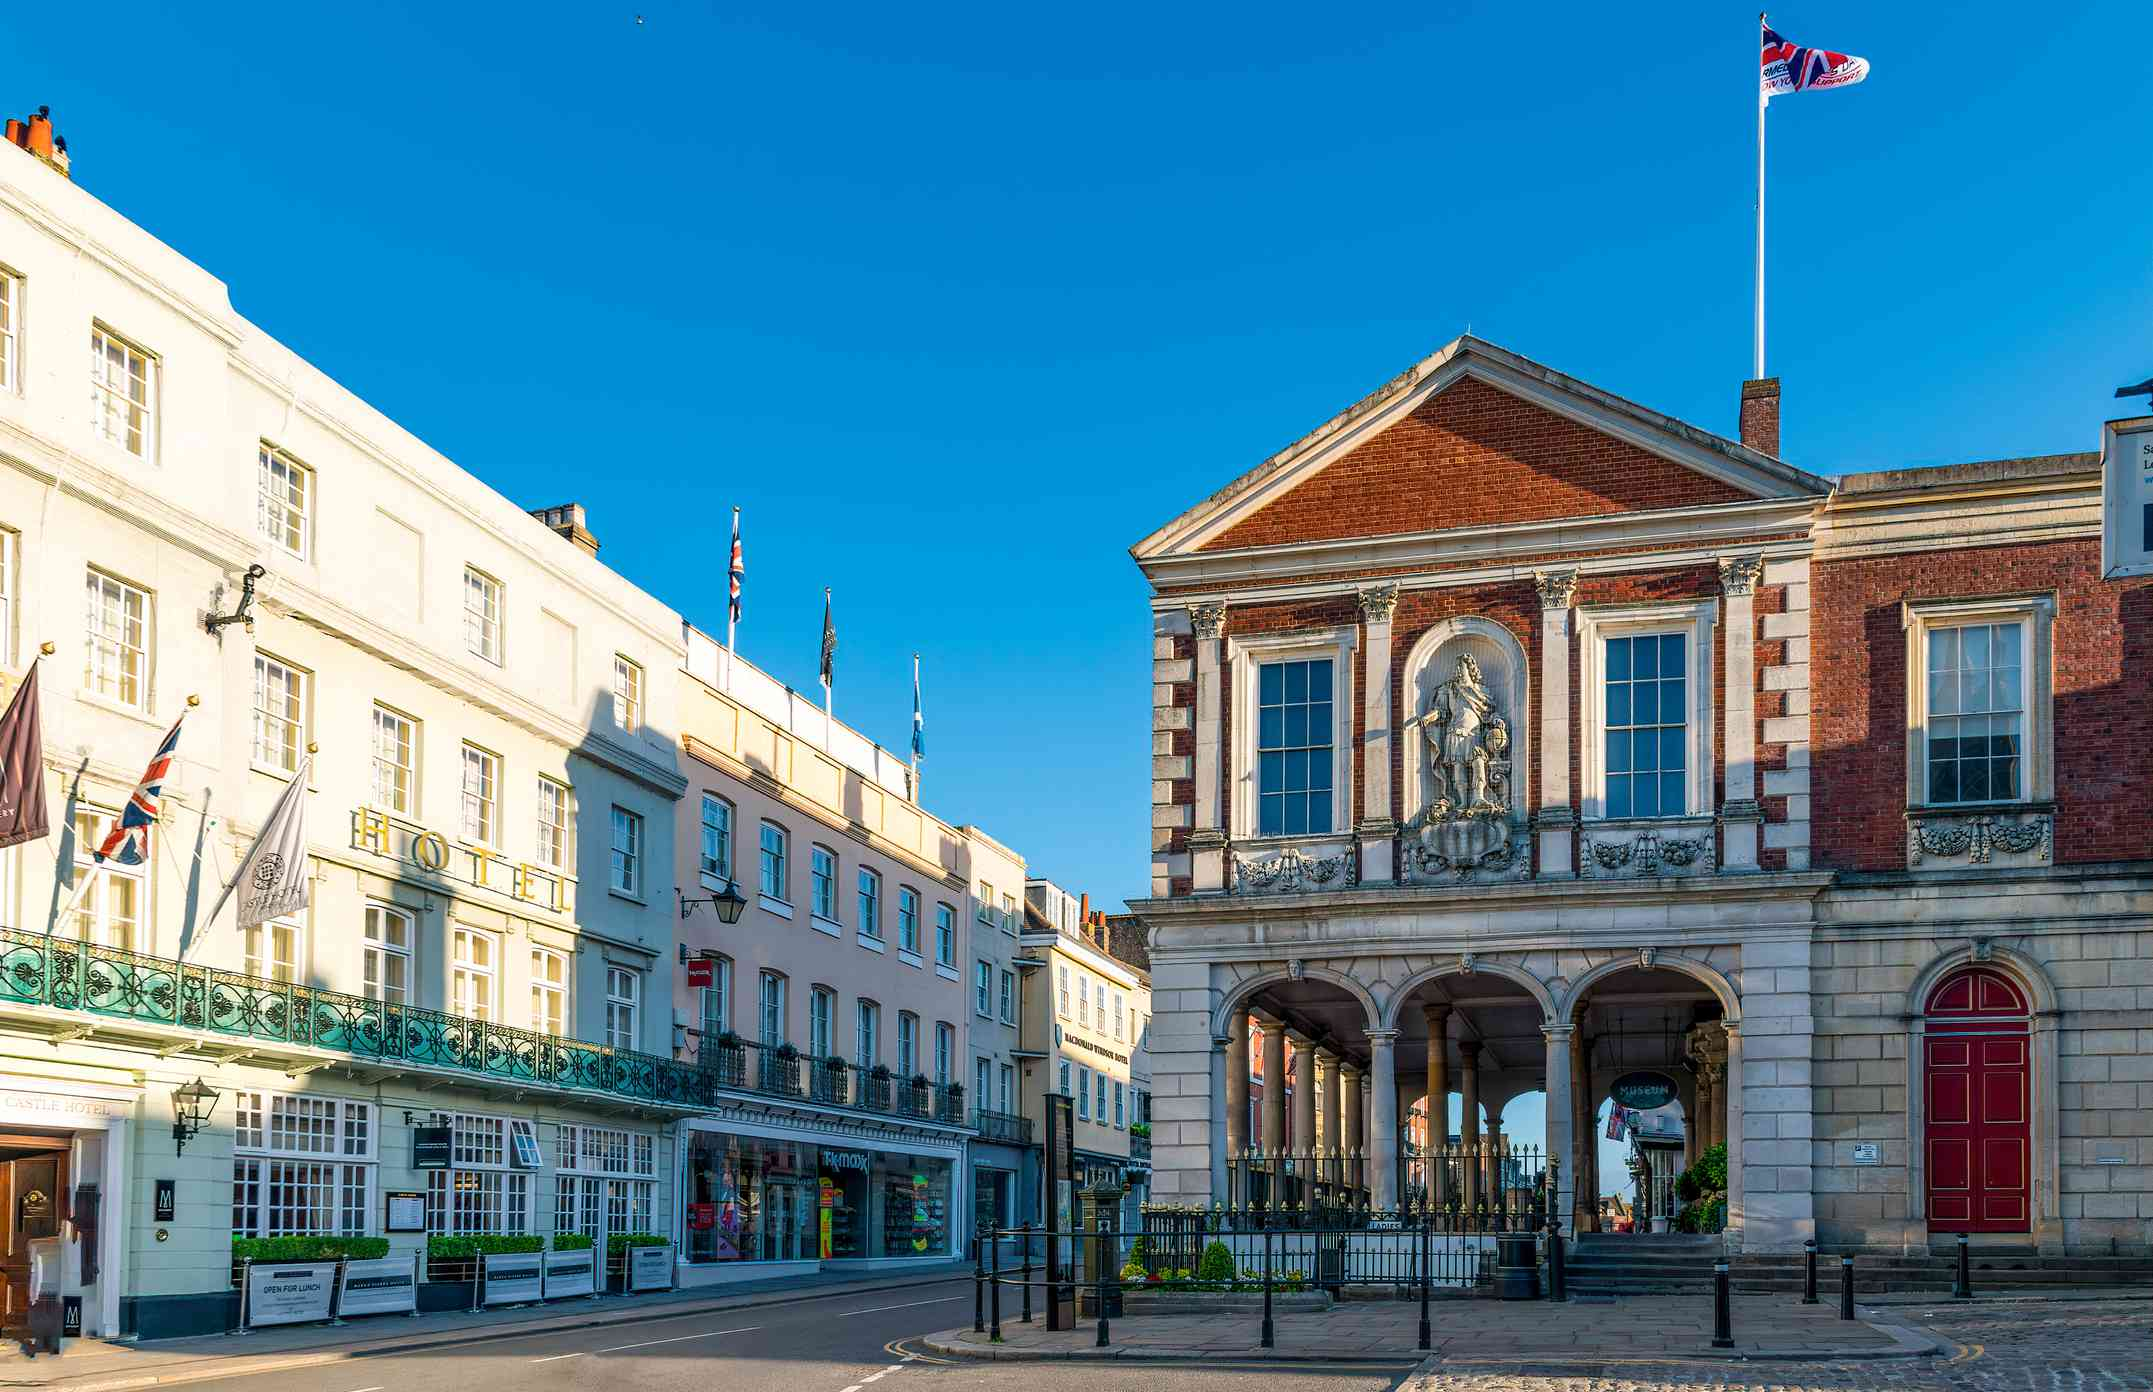 View of Windsor and Royal Borough Museum on a cloudless day